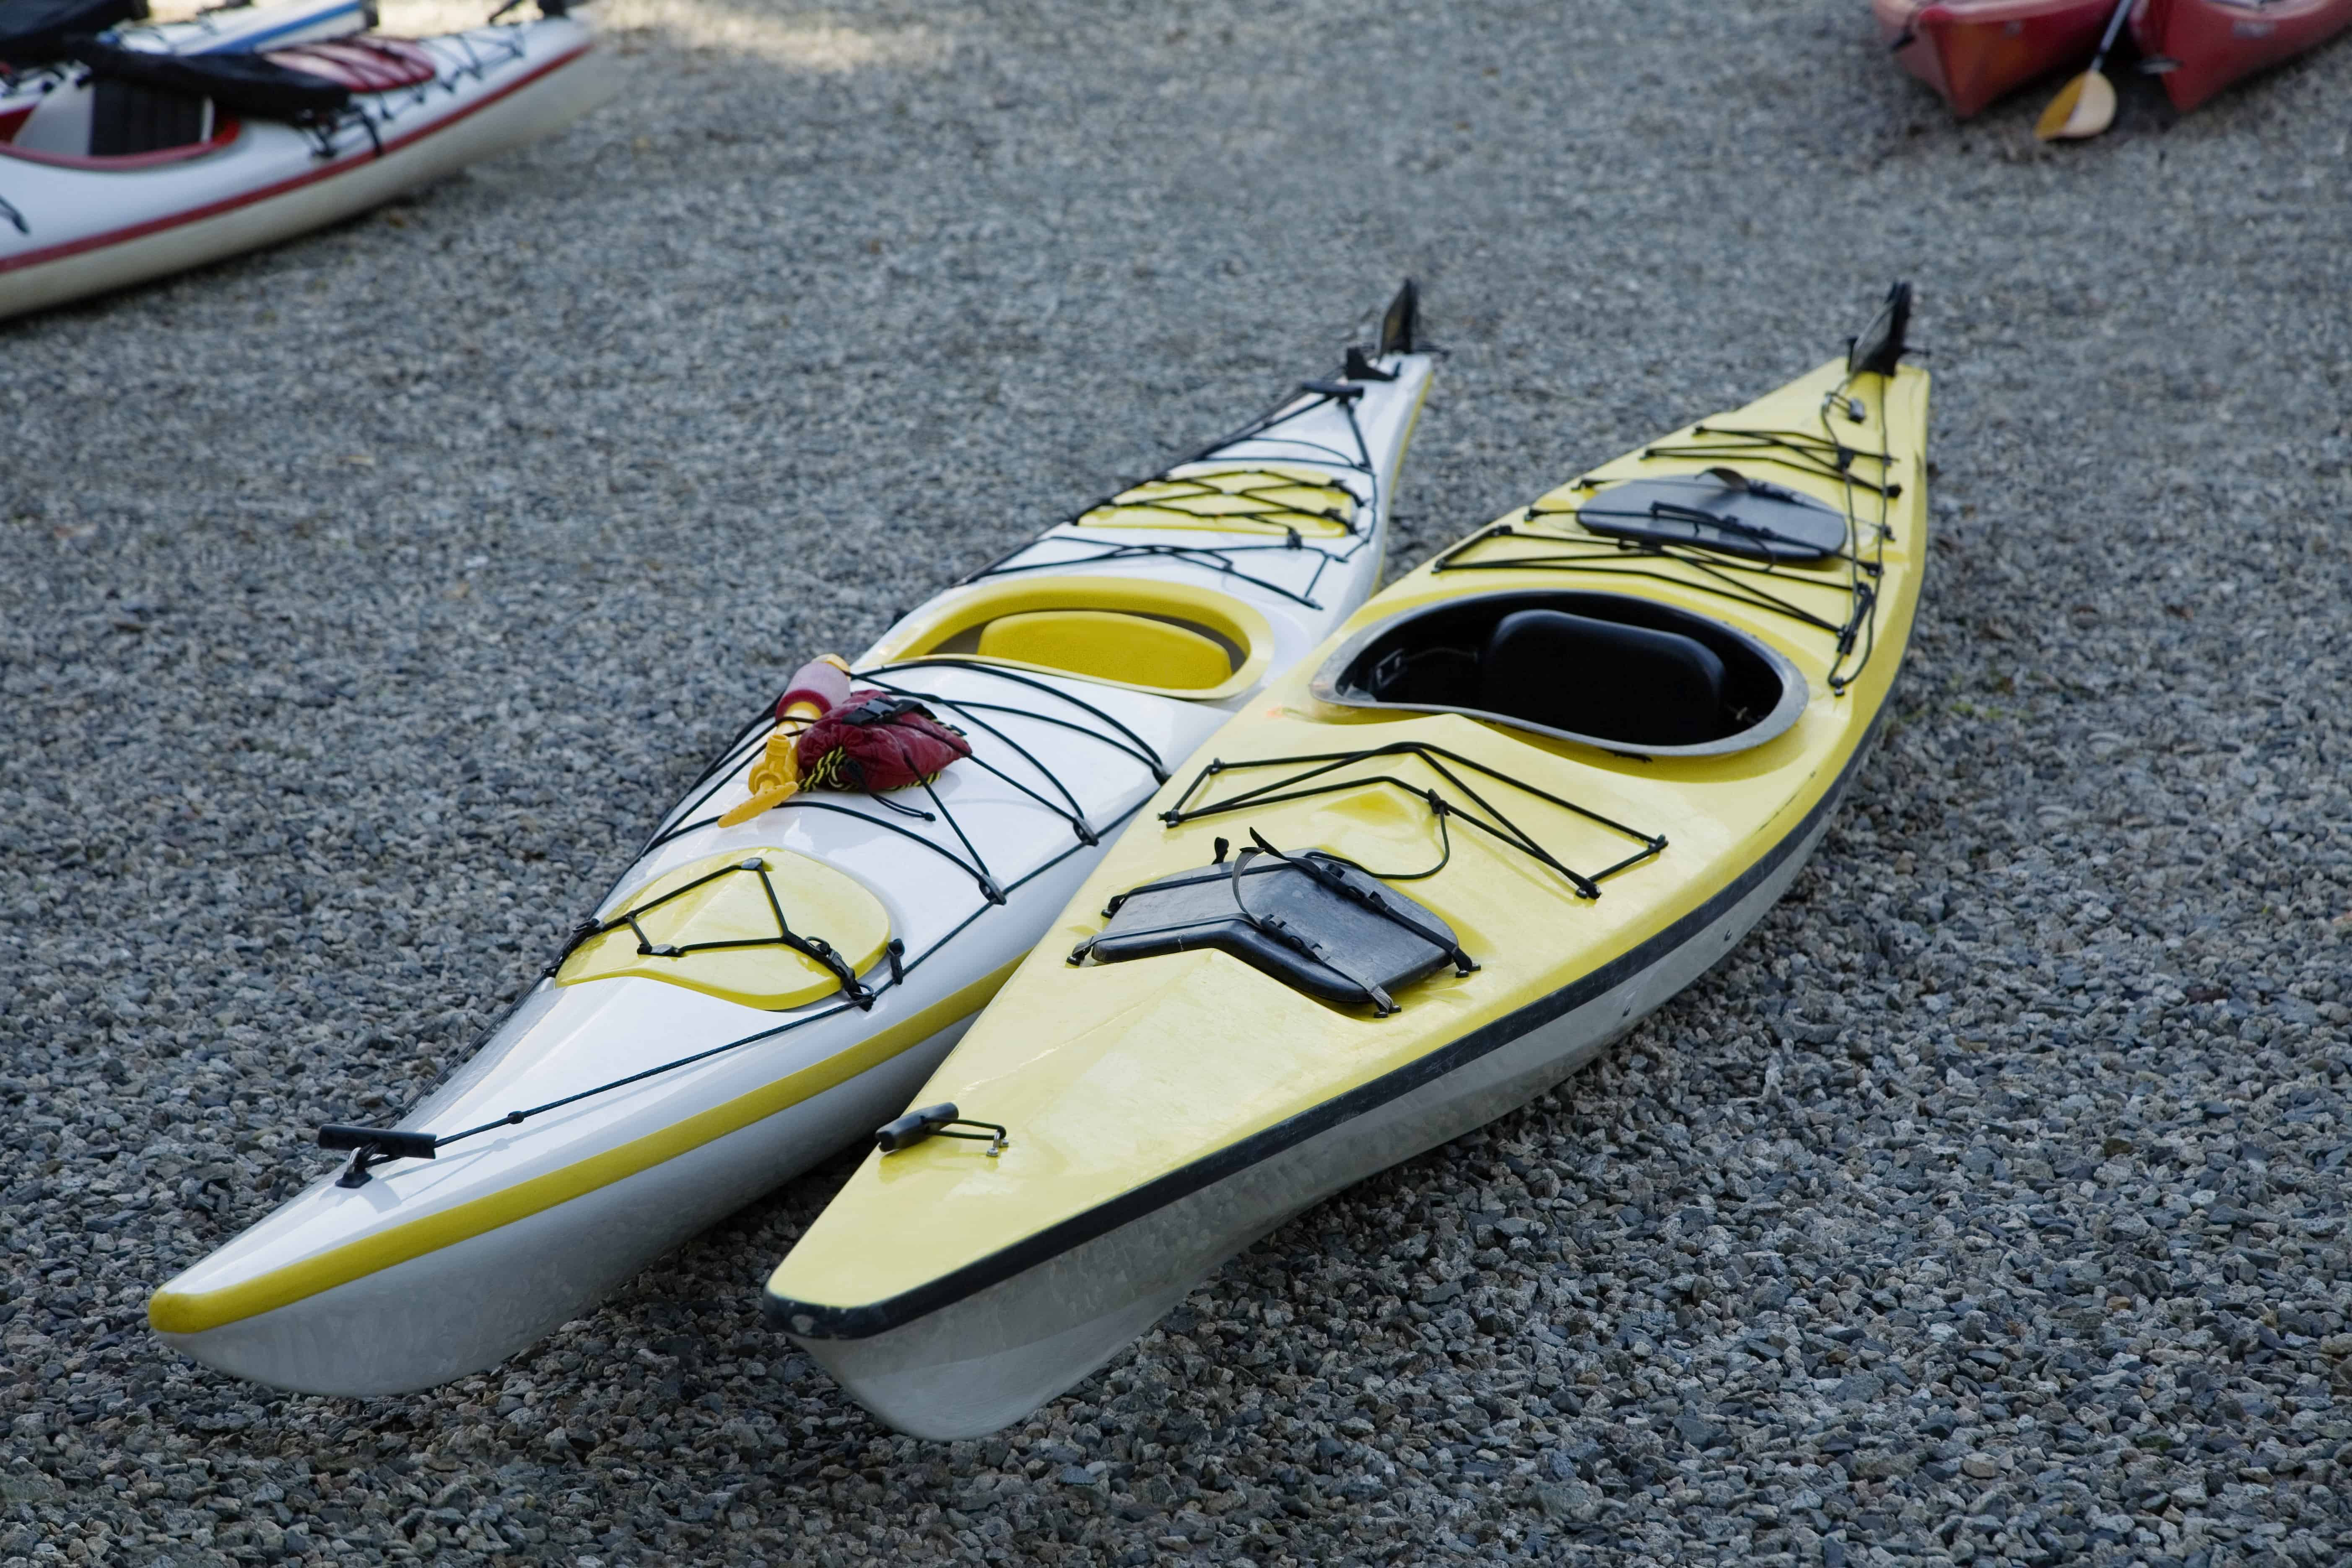 Sea Kayak on shingle